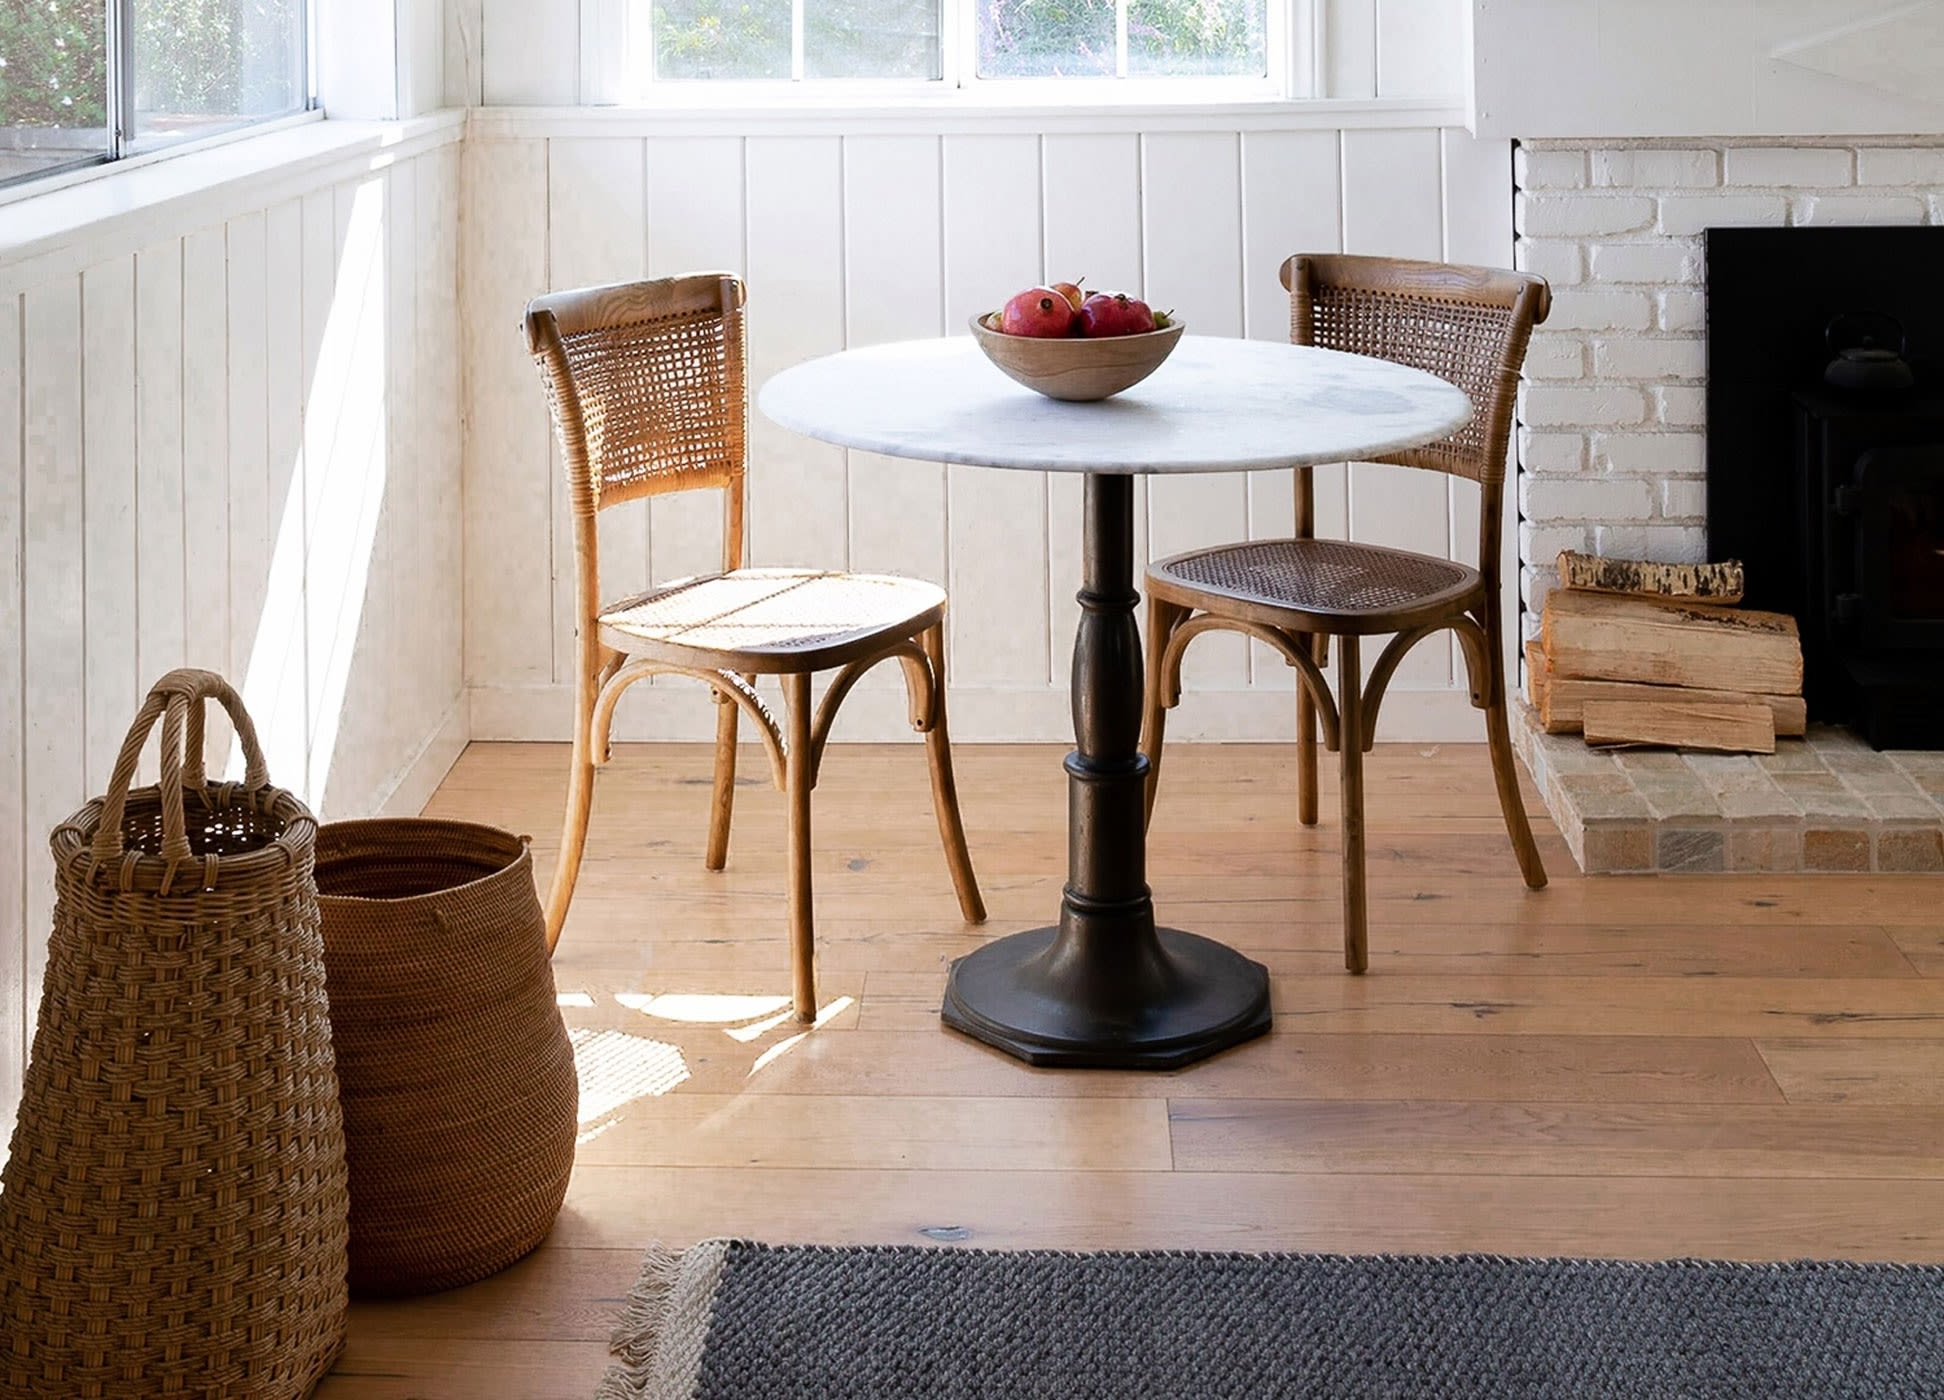 Fashionable Stories – Styling Series: How To Pair Dining Tables And Chairs Pertaining To Dining Tables In Smoked/seared Oak (View 18 of 30)